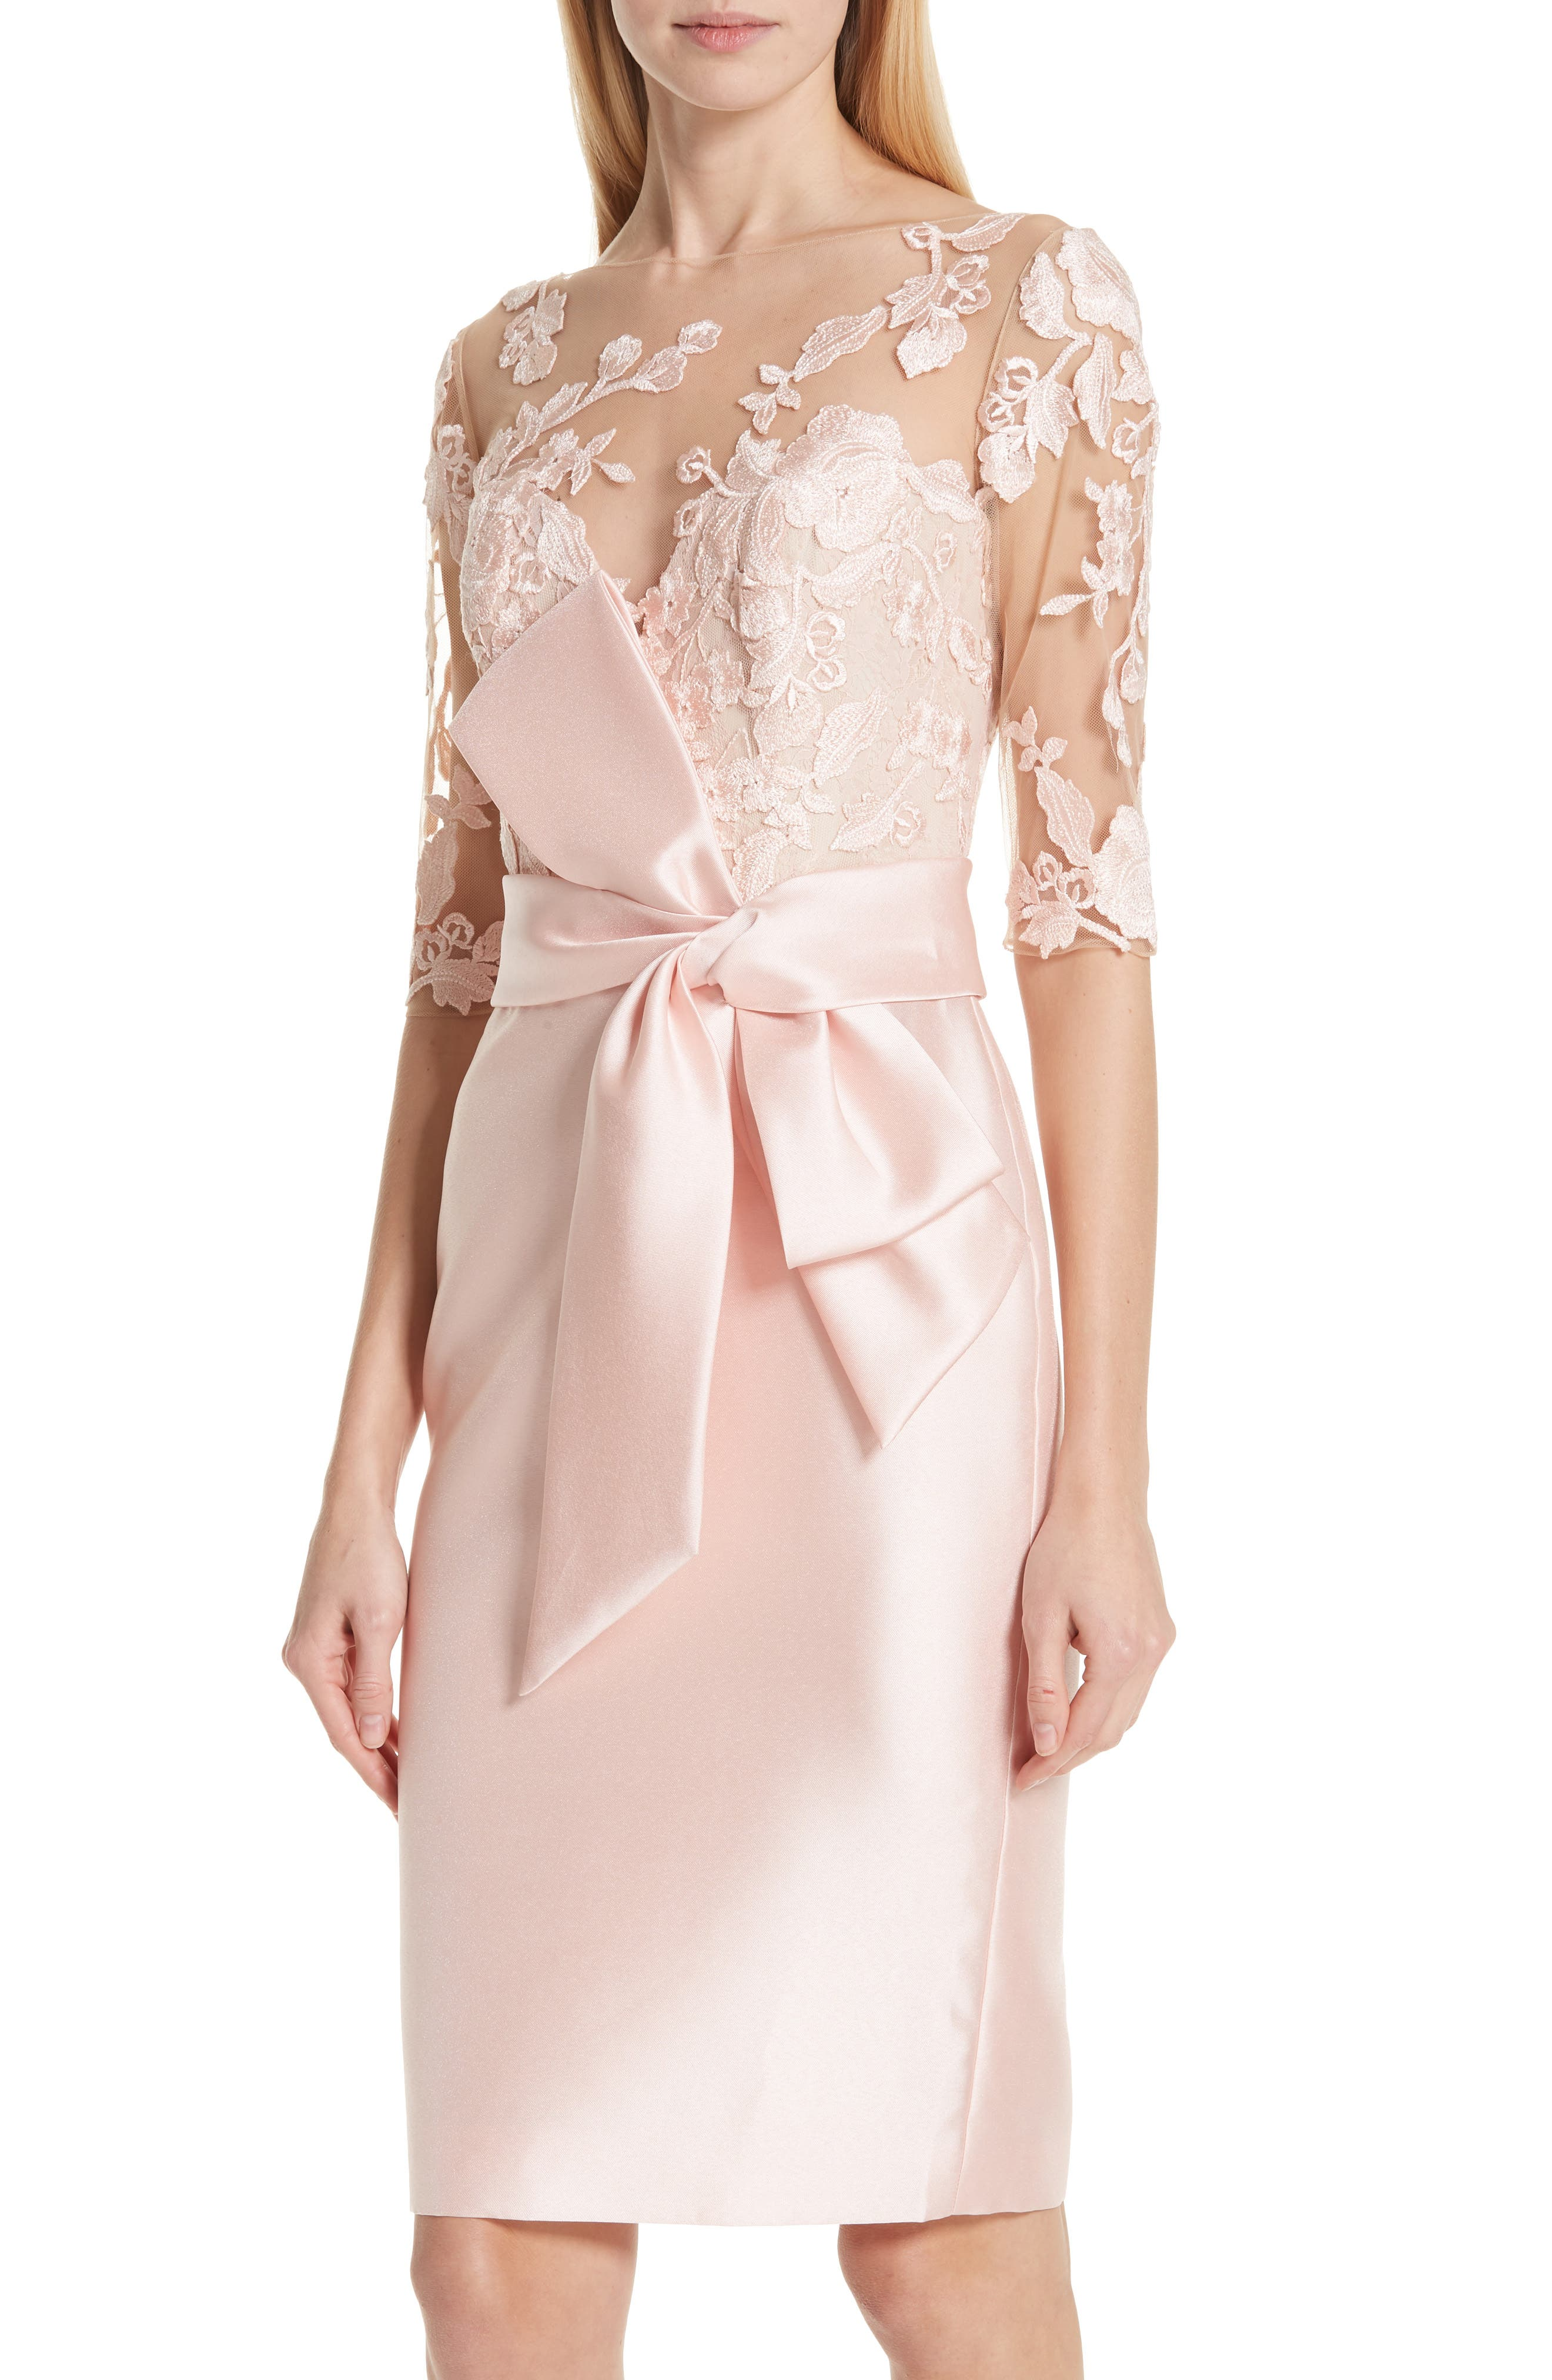 BADGLEY MISCHKA COLLECTION,                             Badgley Mischka Lace Accent Bow Cocktail Dress,                             Alternate thumbnail 4, color,                             PETAL